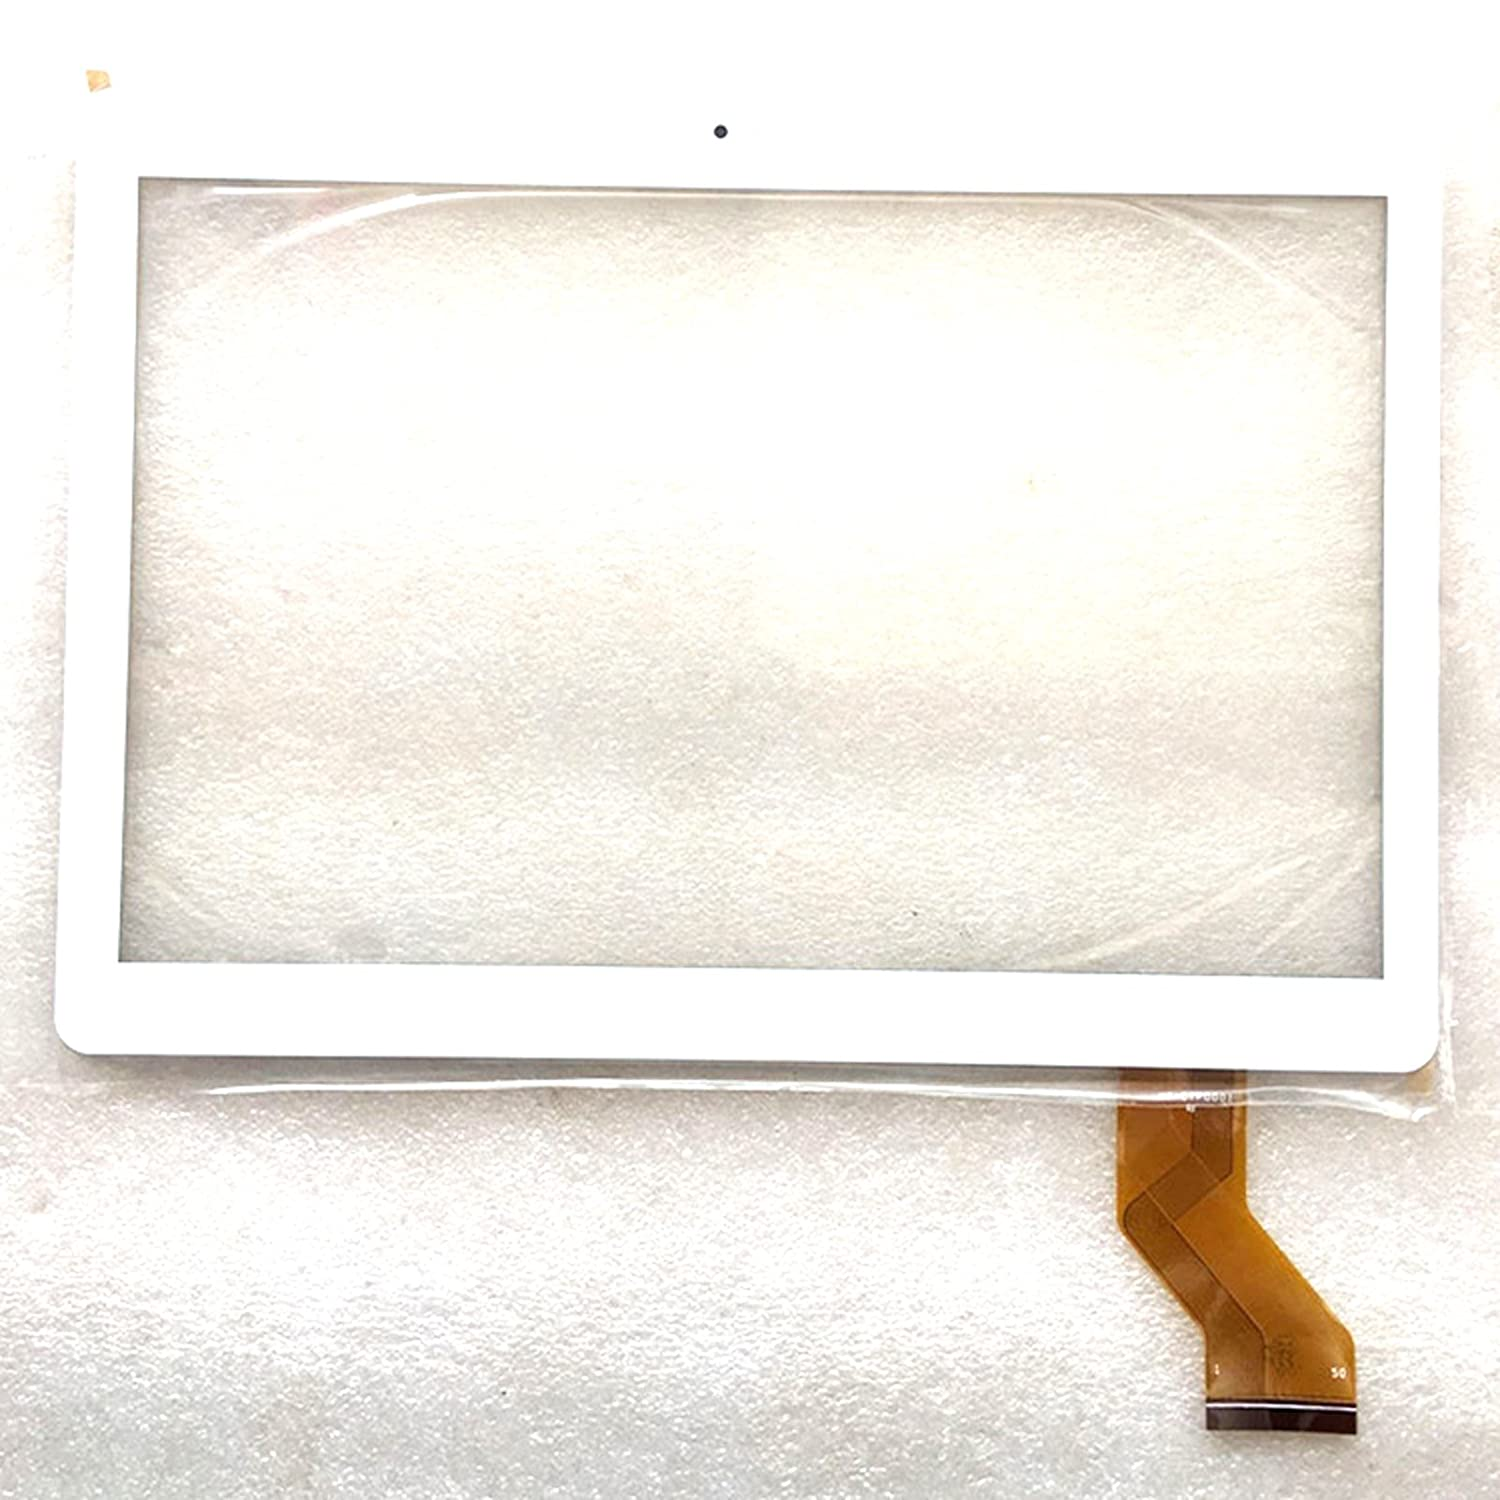 For YELLYOUTH Octa Core 3G YY-107S New Touch Screen Digitizer Tablet Replacement